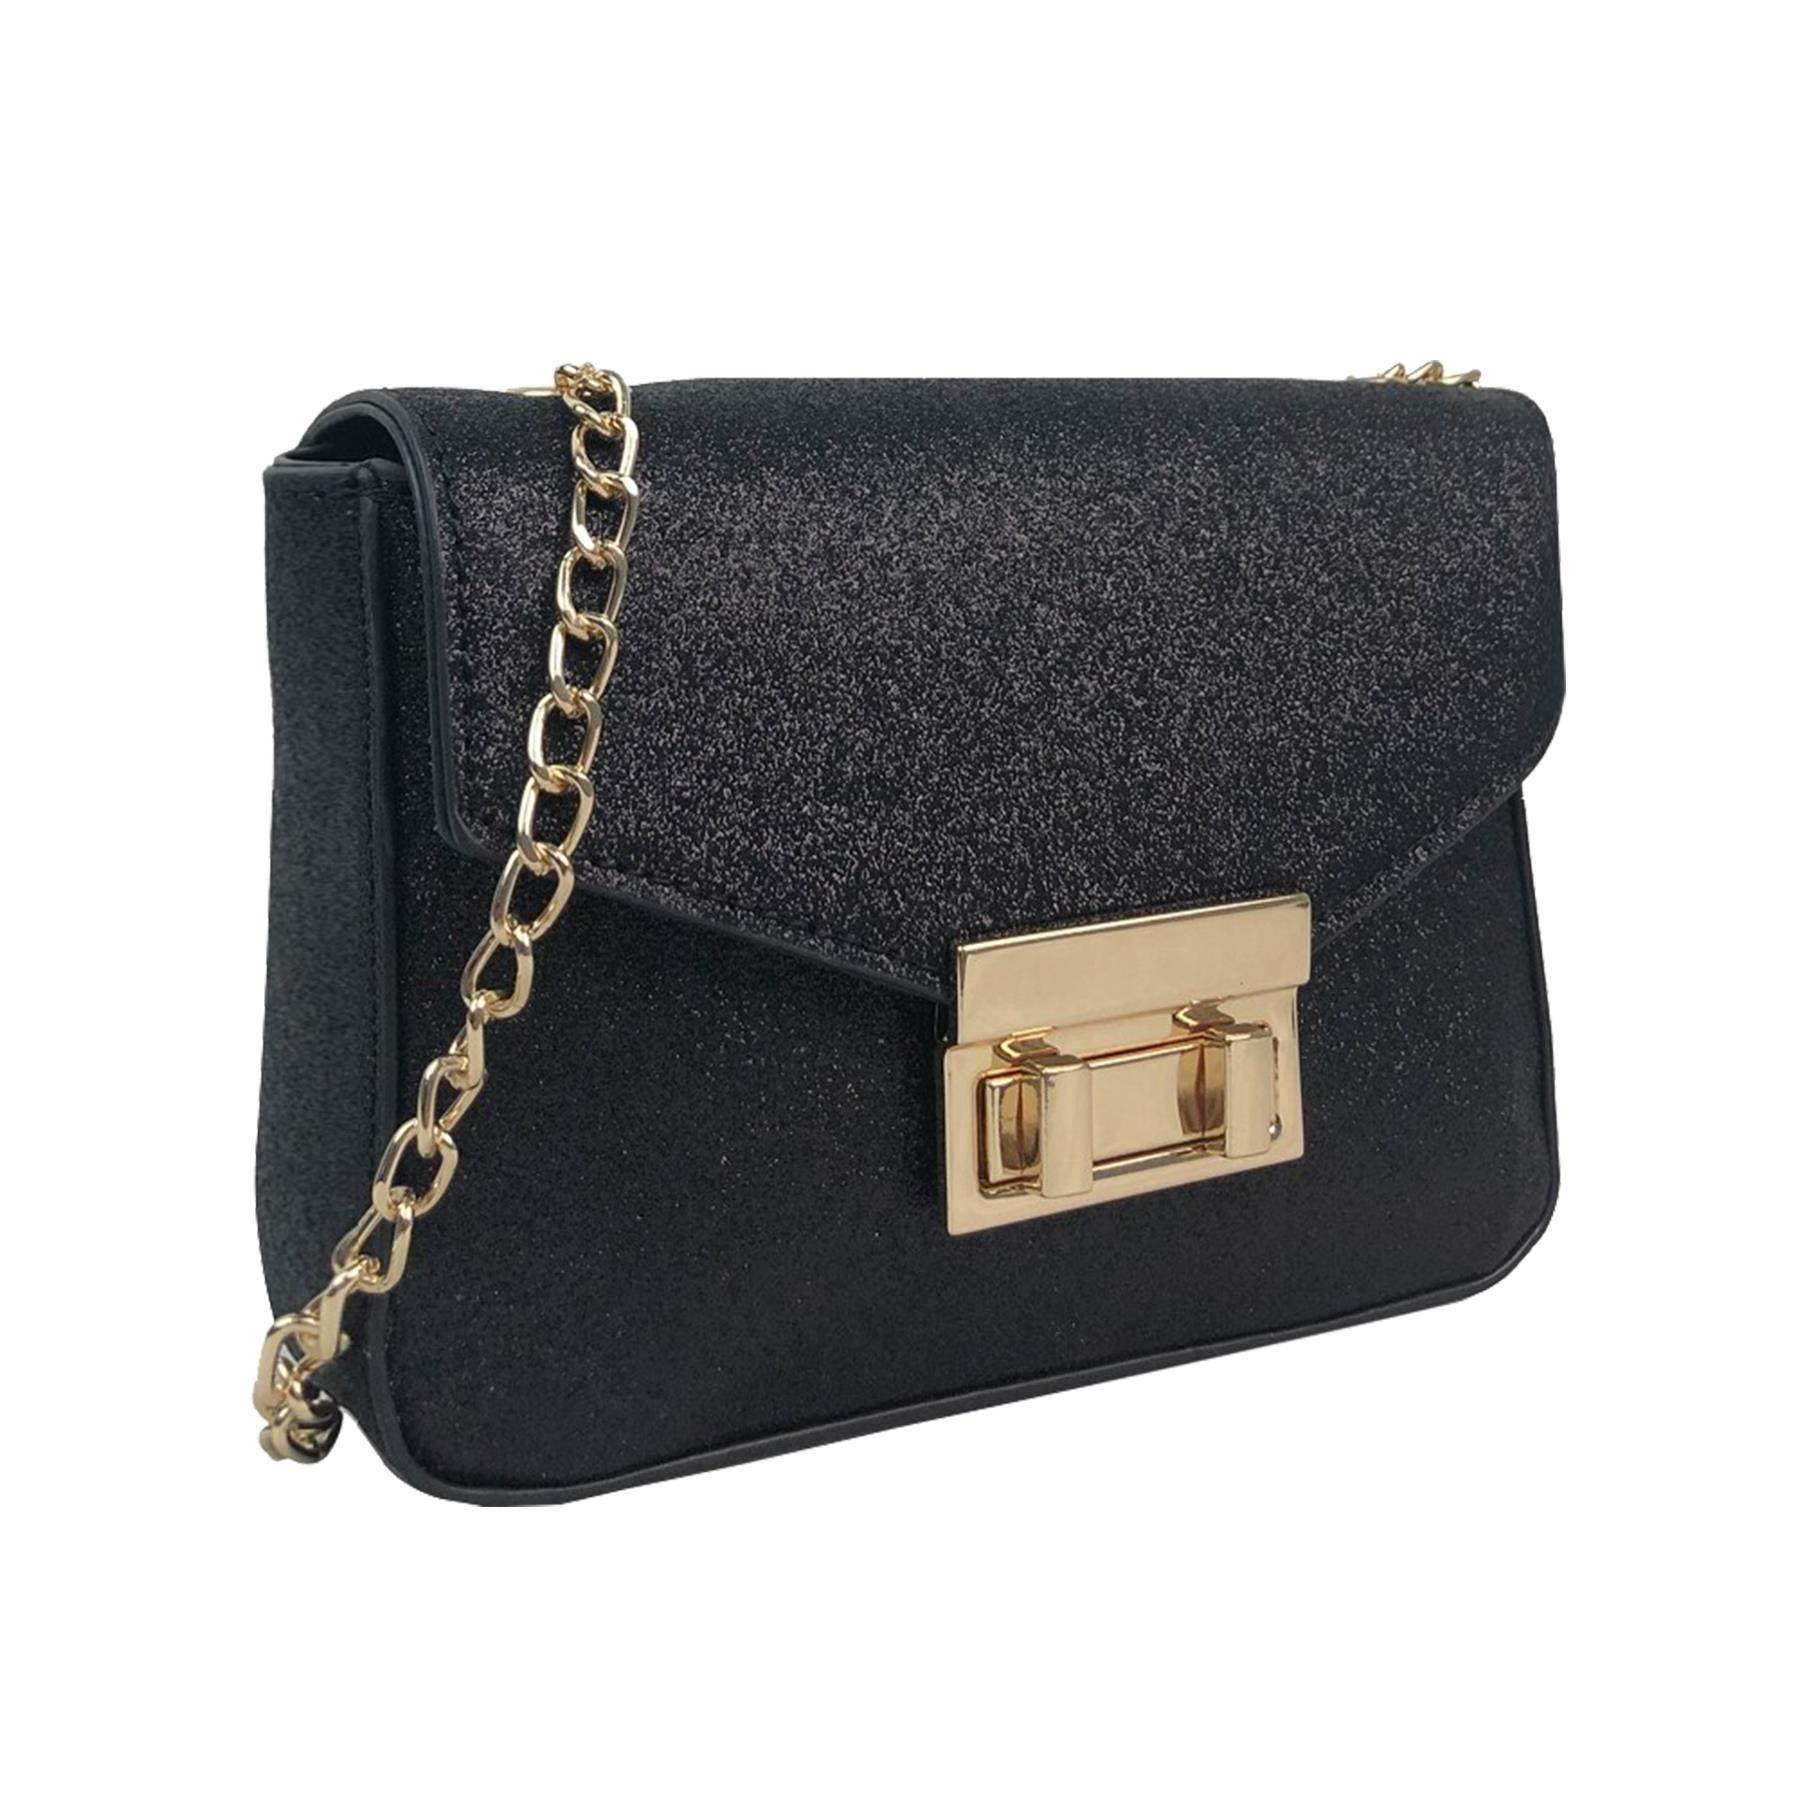 New-Glitter-Chain-Tassel-Decoration-Ladies-Party-Stylish-Clutch-Shoulder-Bags thumbnail 3